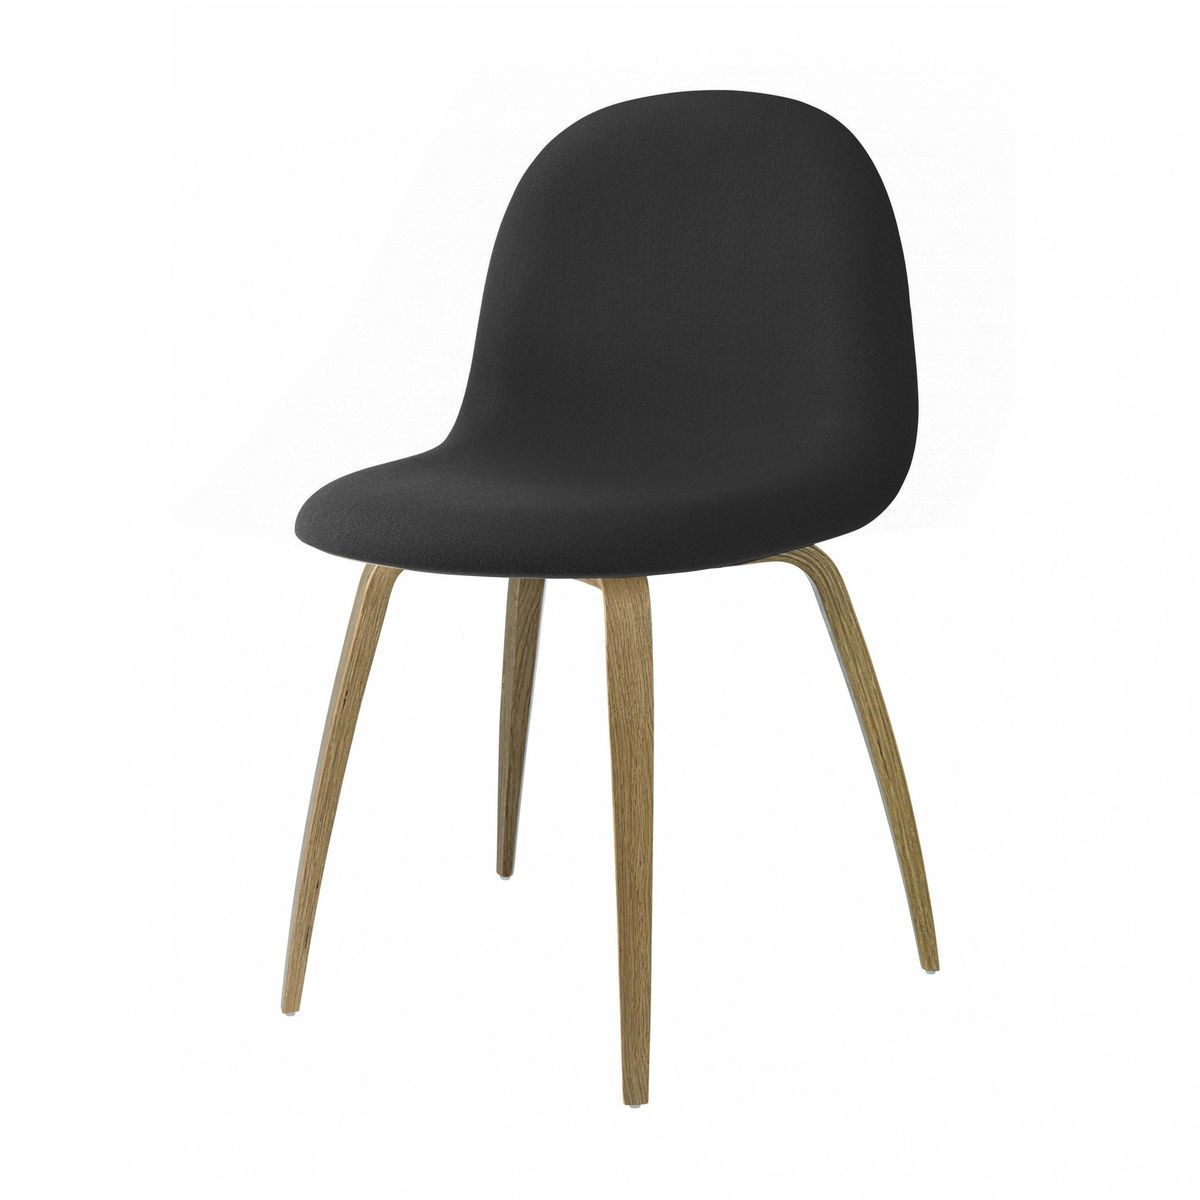 gubi 3d chair upholstered with wood frame gubi. Black Bedroom Furniture Sets. Home Design Ideas